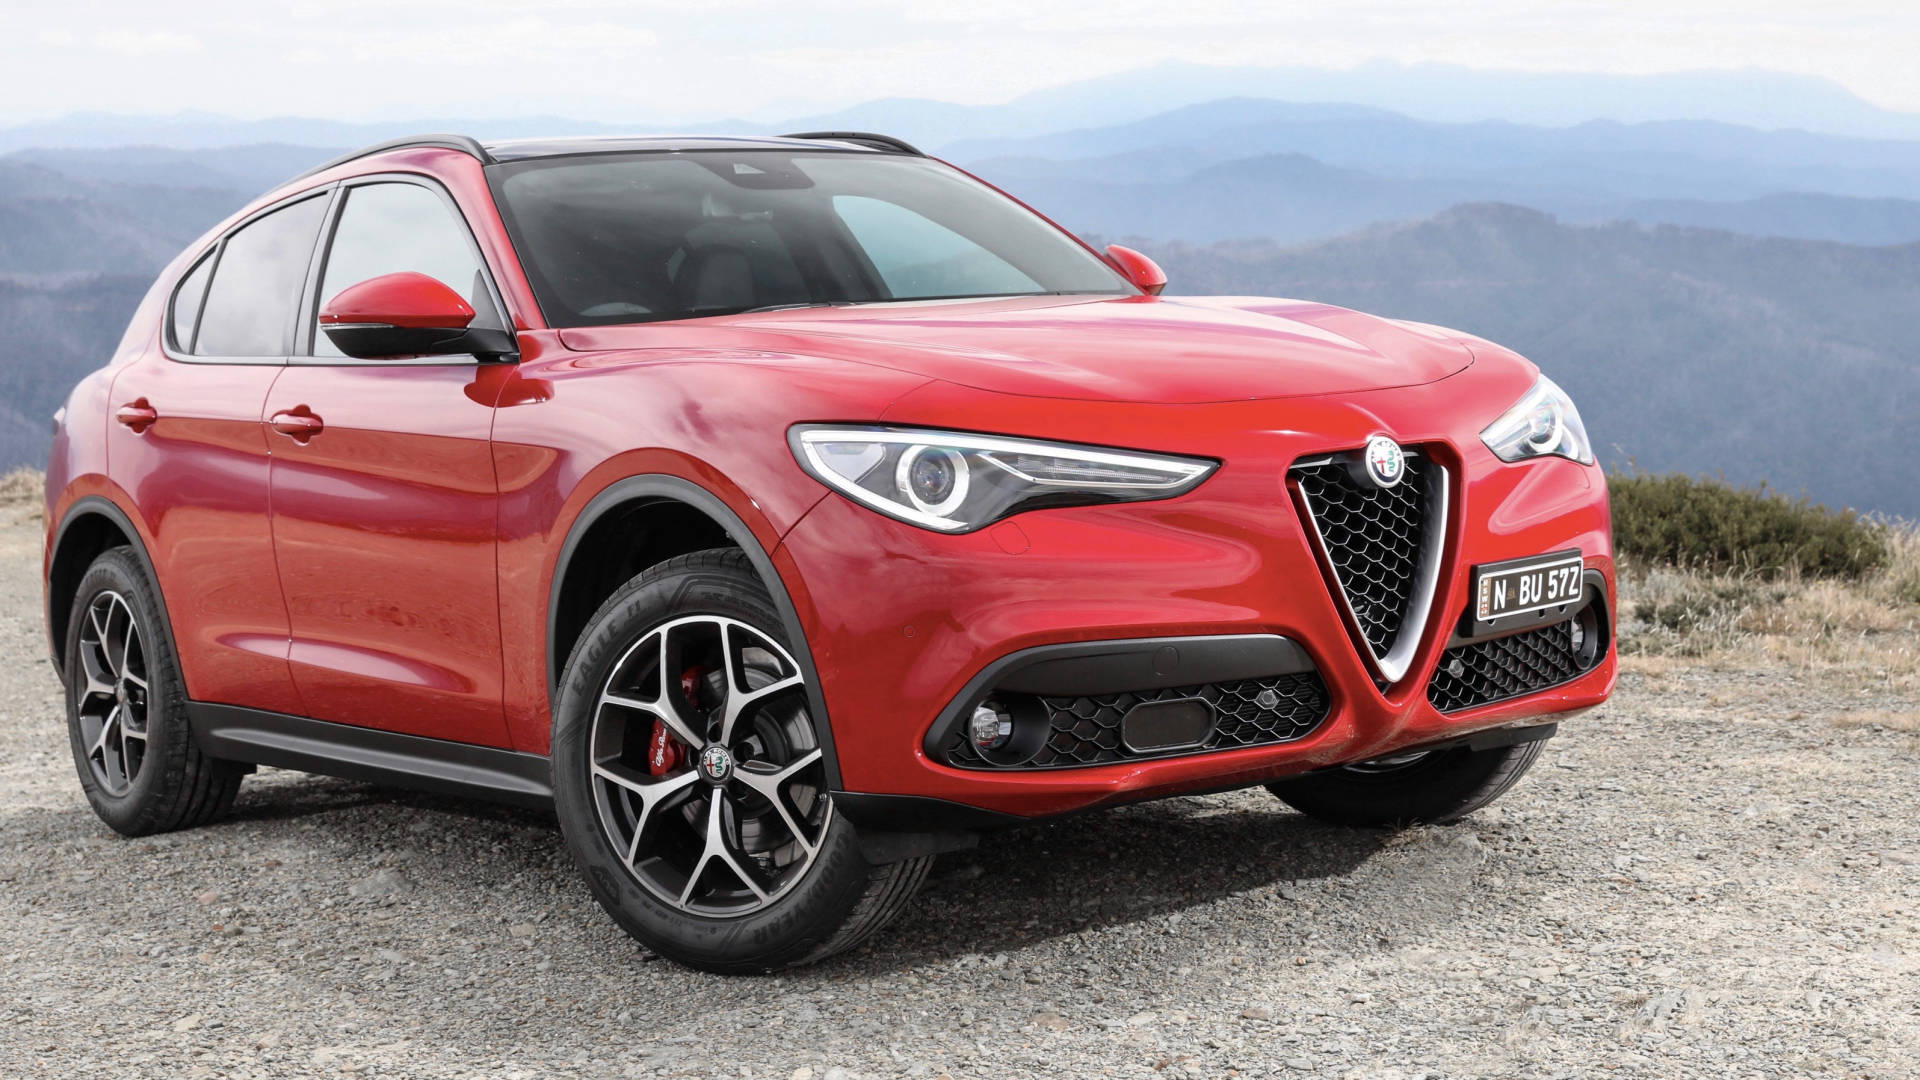 2018 Alfa Romeo Stelvio First Edition red front 3/4